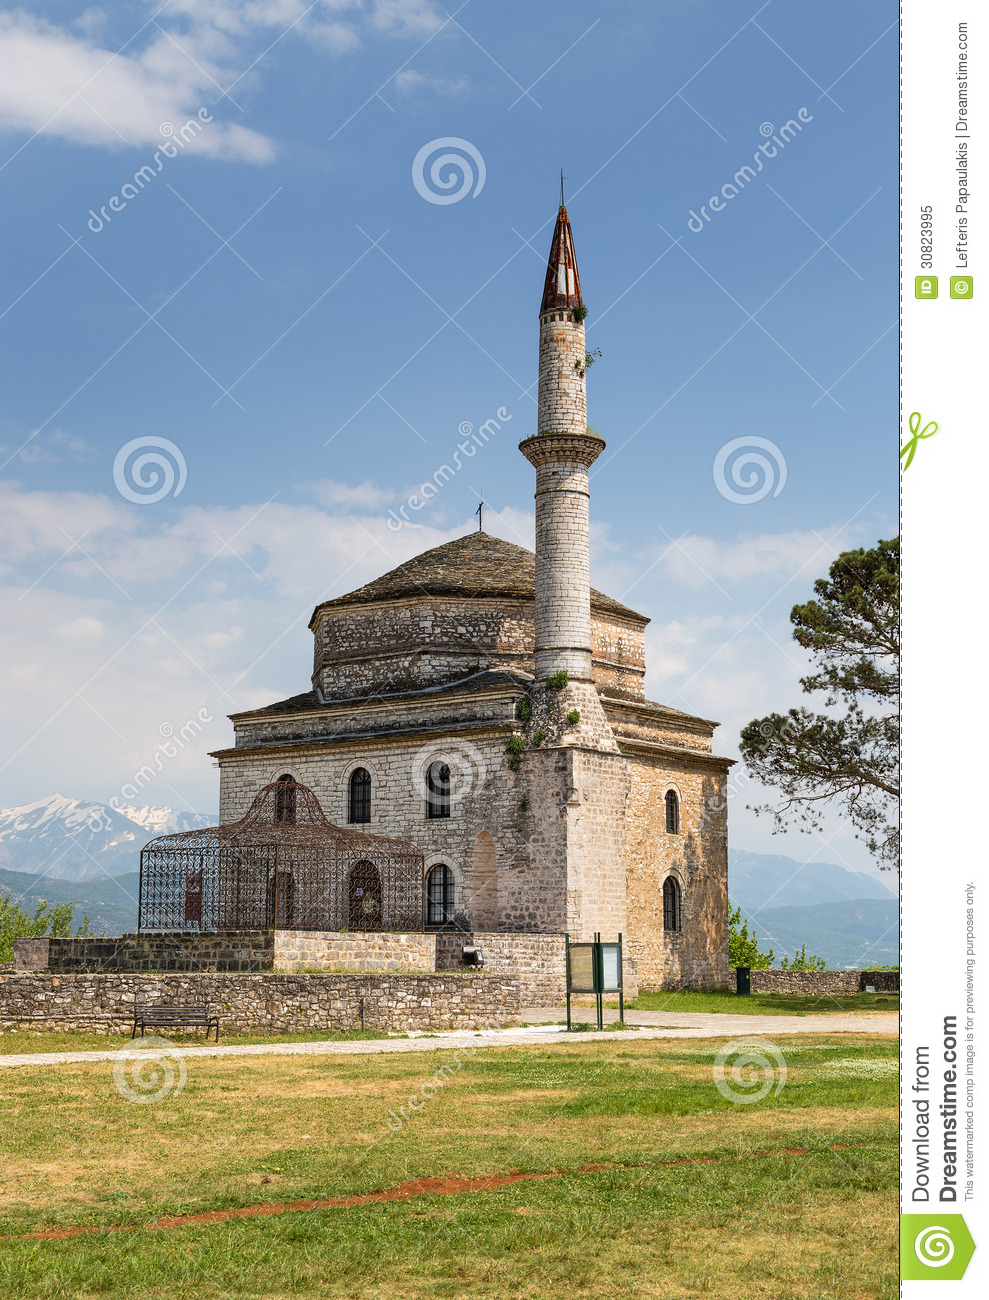 Fethiye Mosque With The Tomb Of Ali Pasha In The